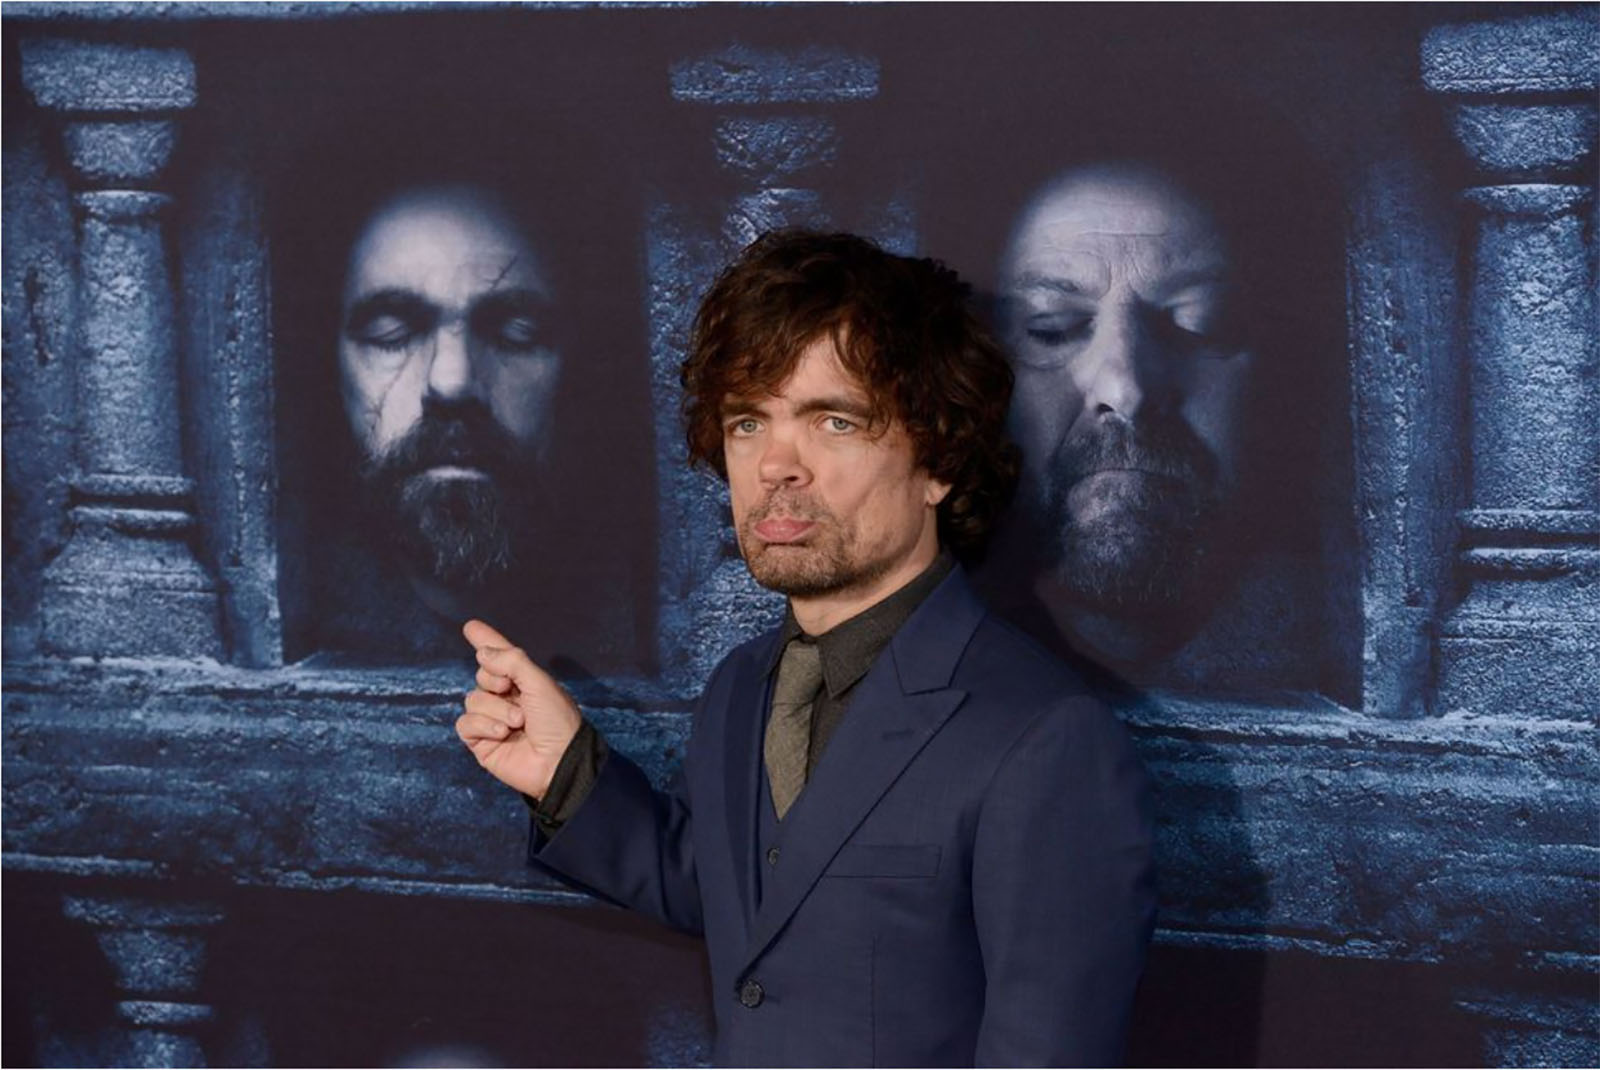 Peter Dinklage From Game of Thrones Fears His iPhone